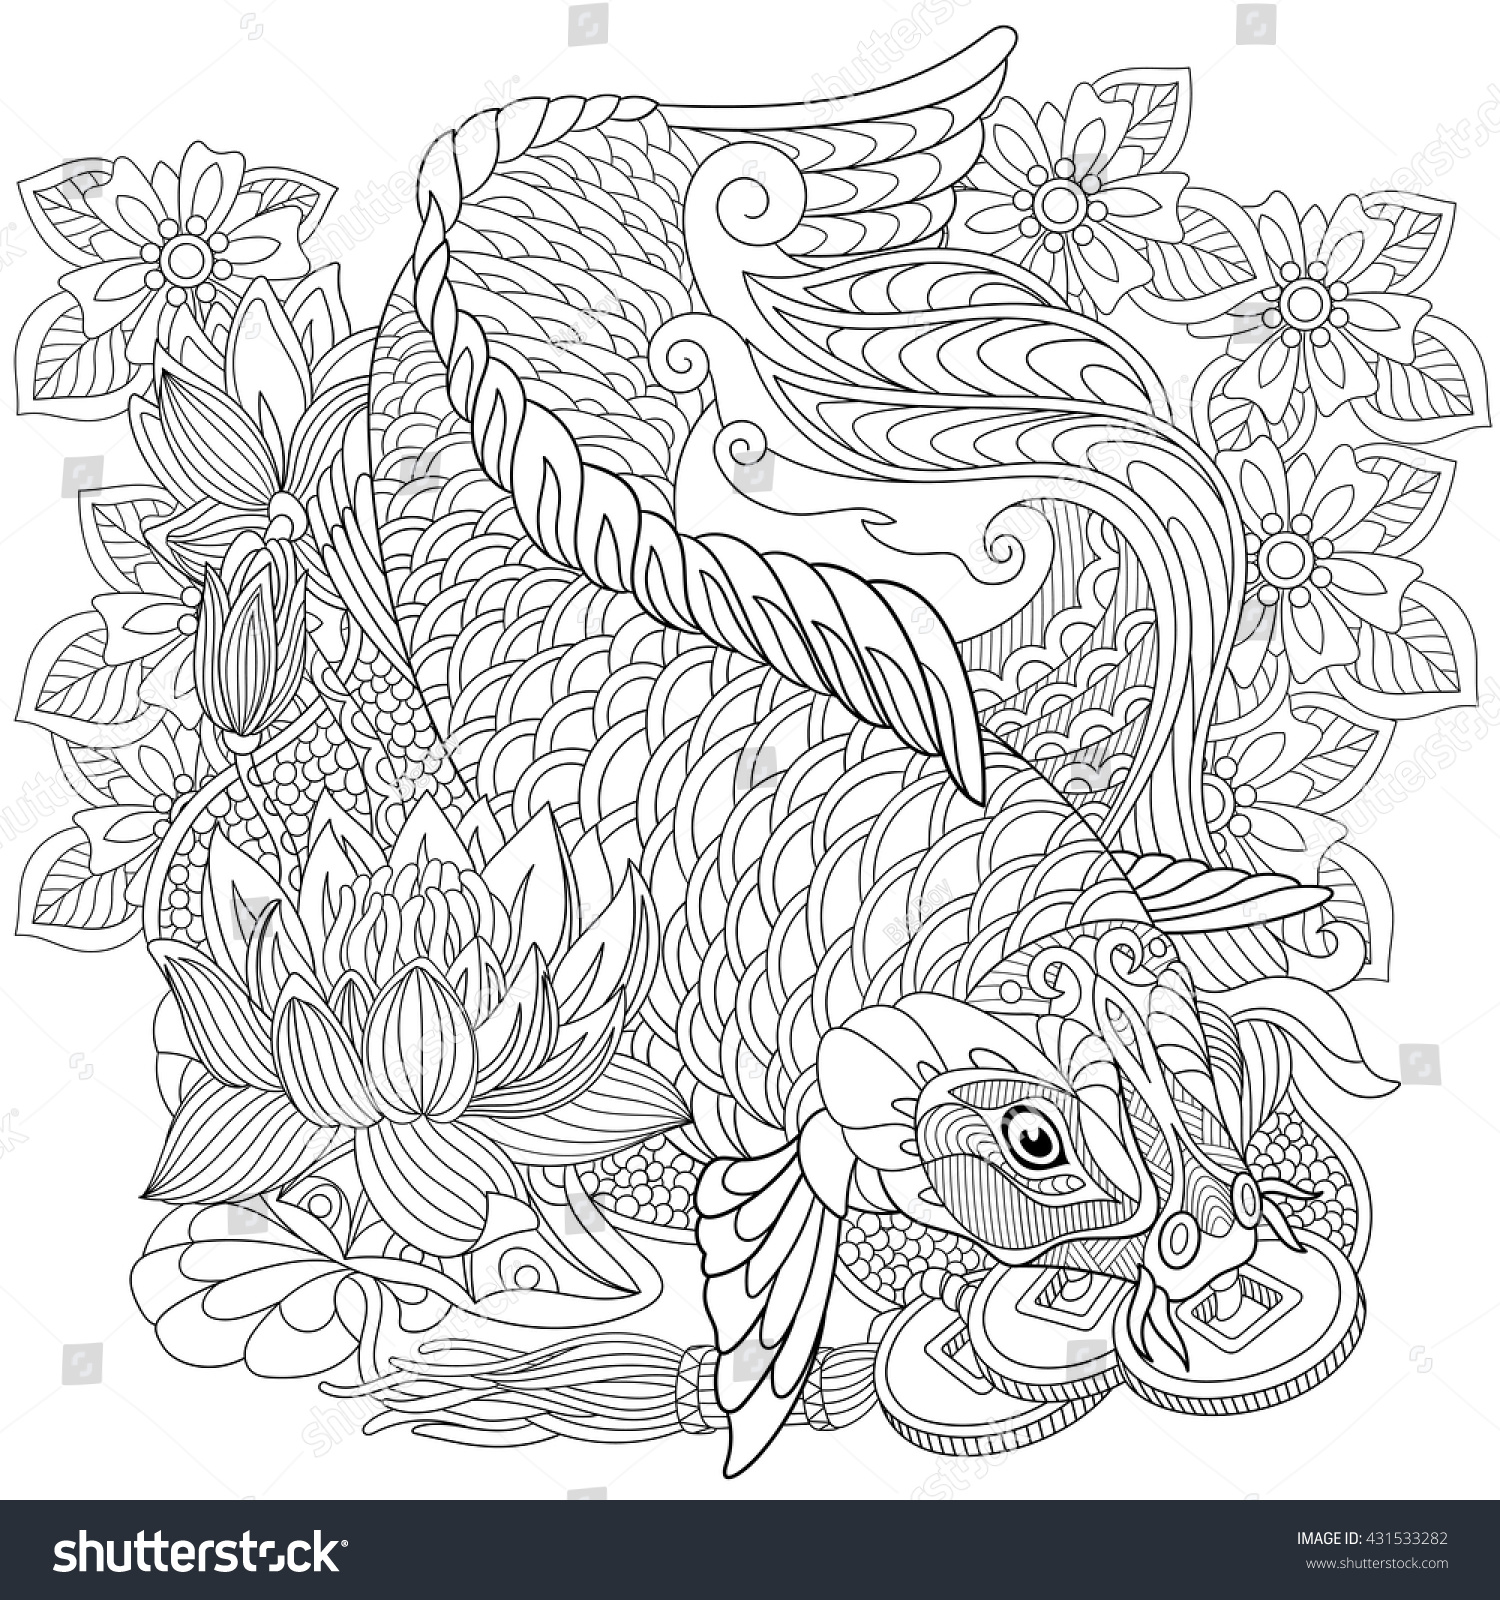 Online image photo editor shutterstock editor Coloring book background